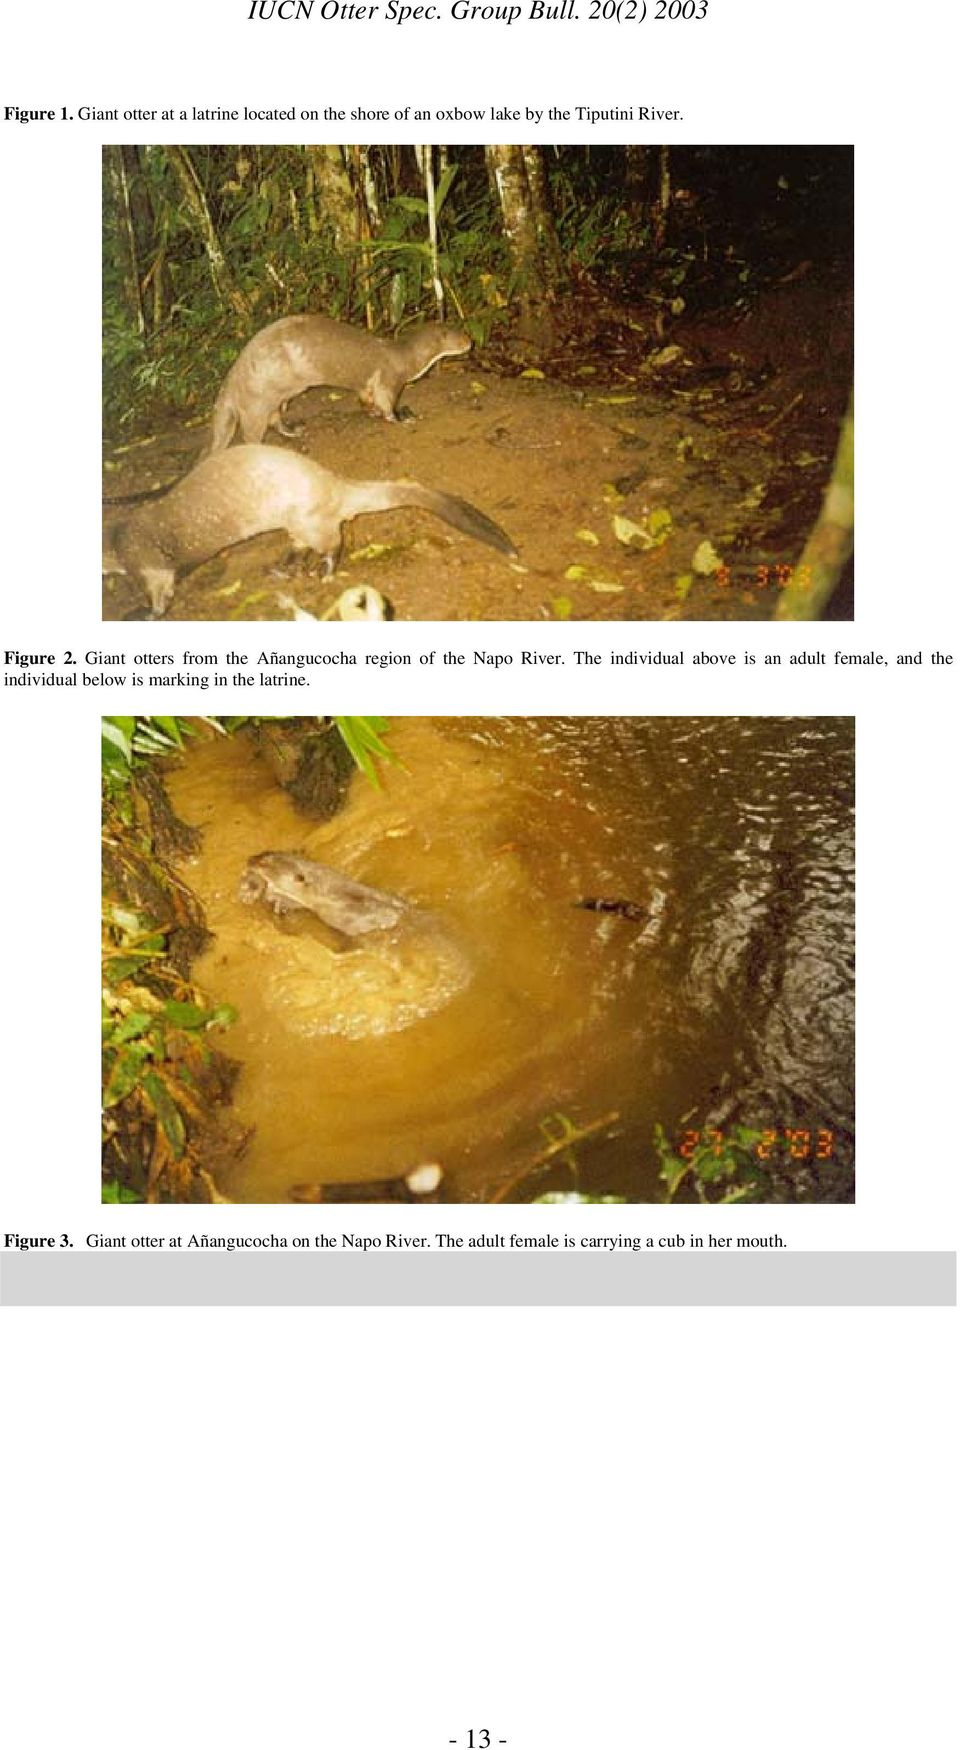 Figure 2. Giant otters from the Añangucocha region of the Napo River.